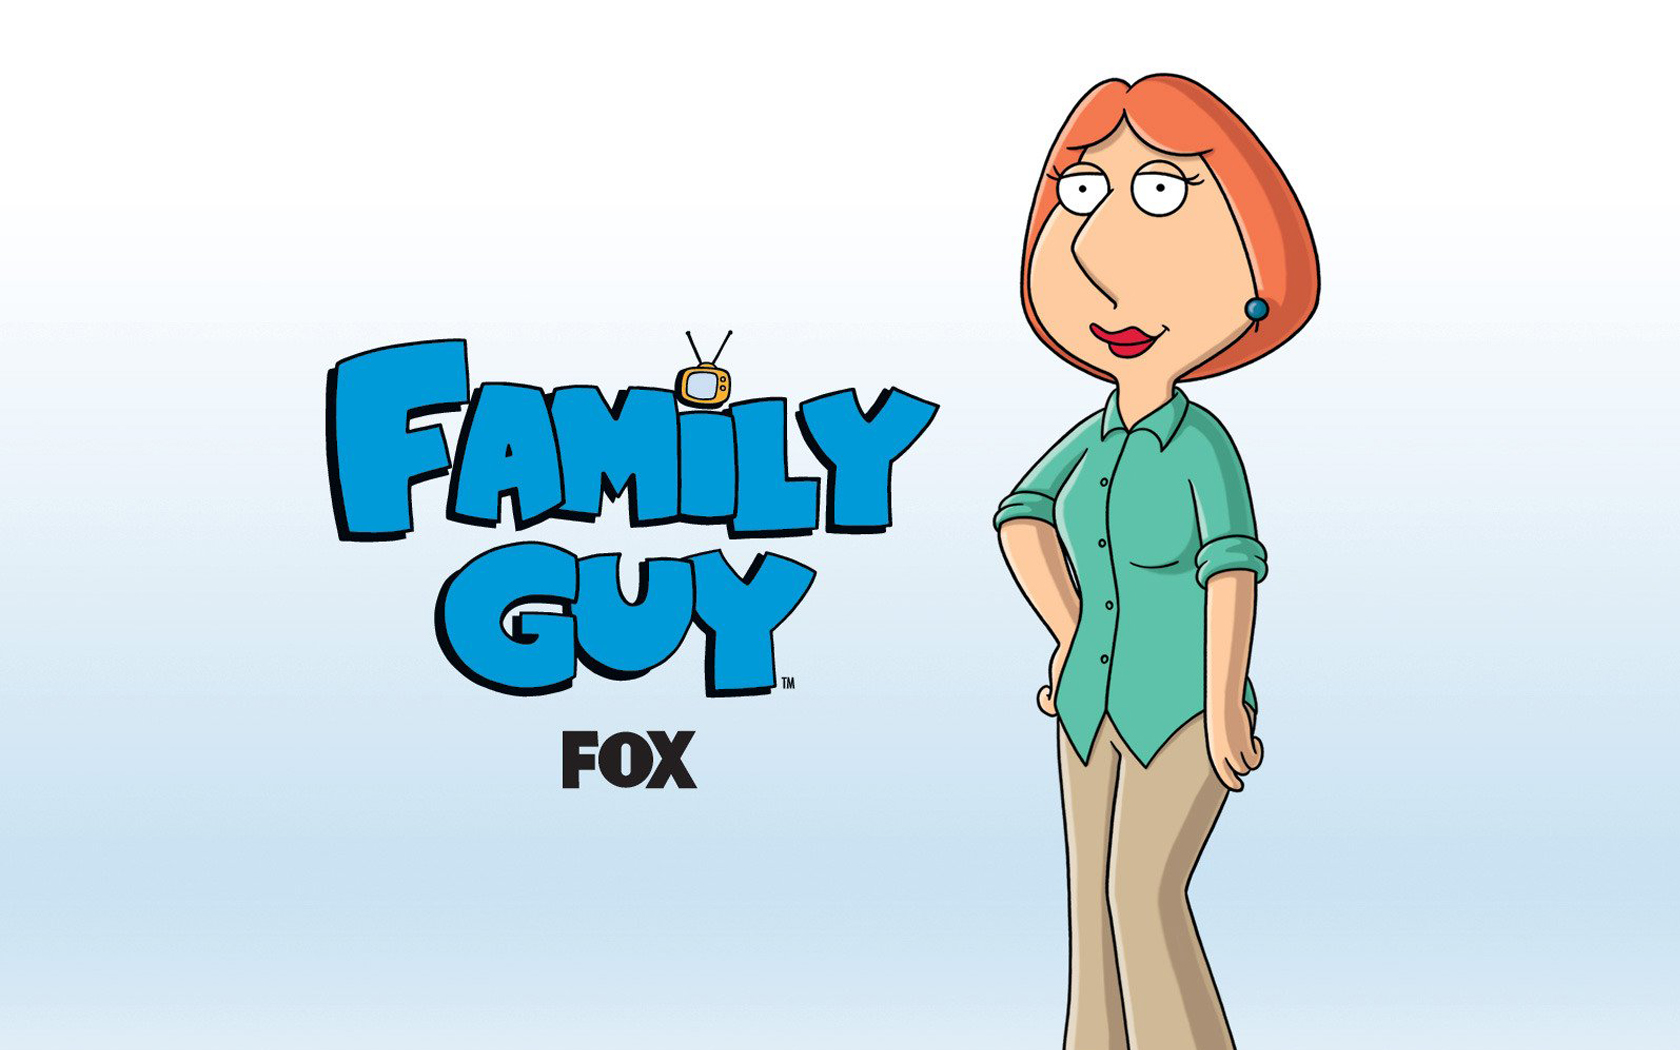 from Bo family guy porn lois griffin